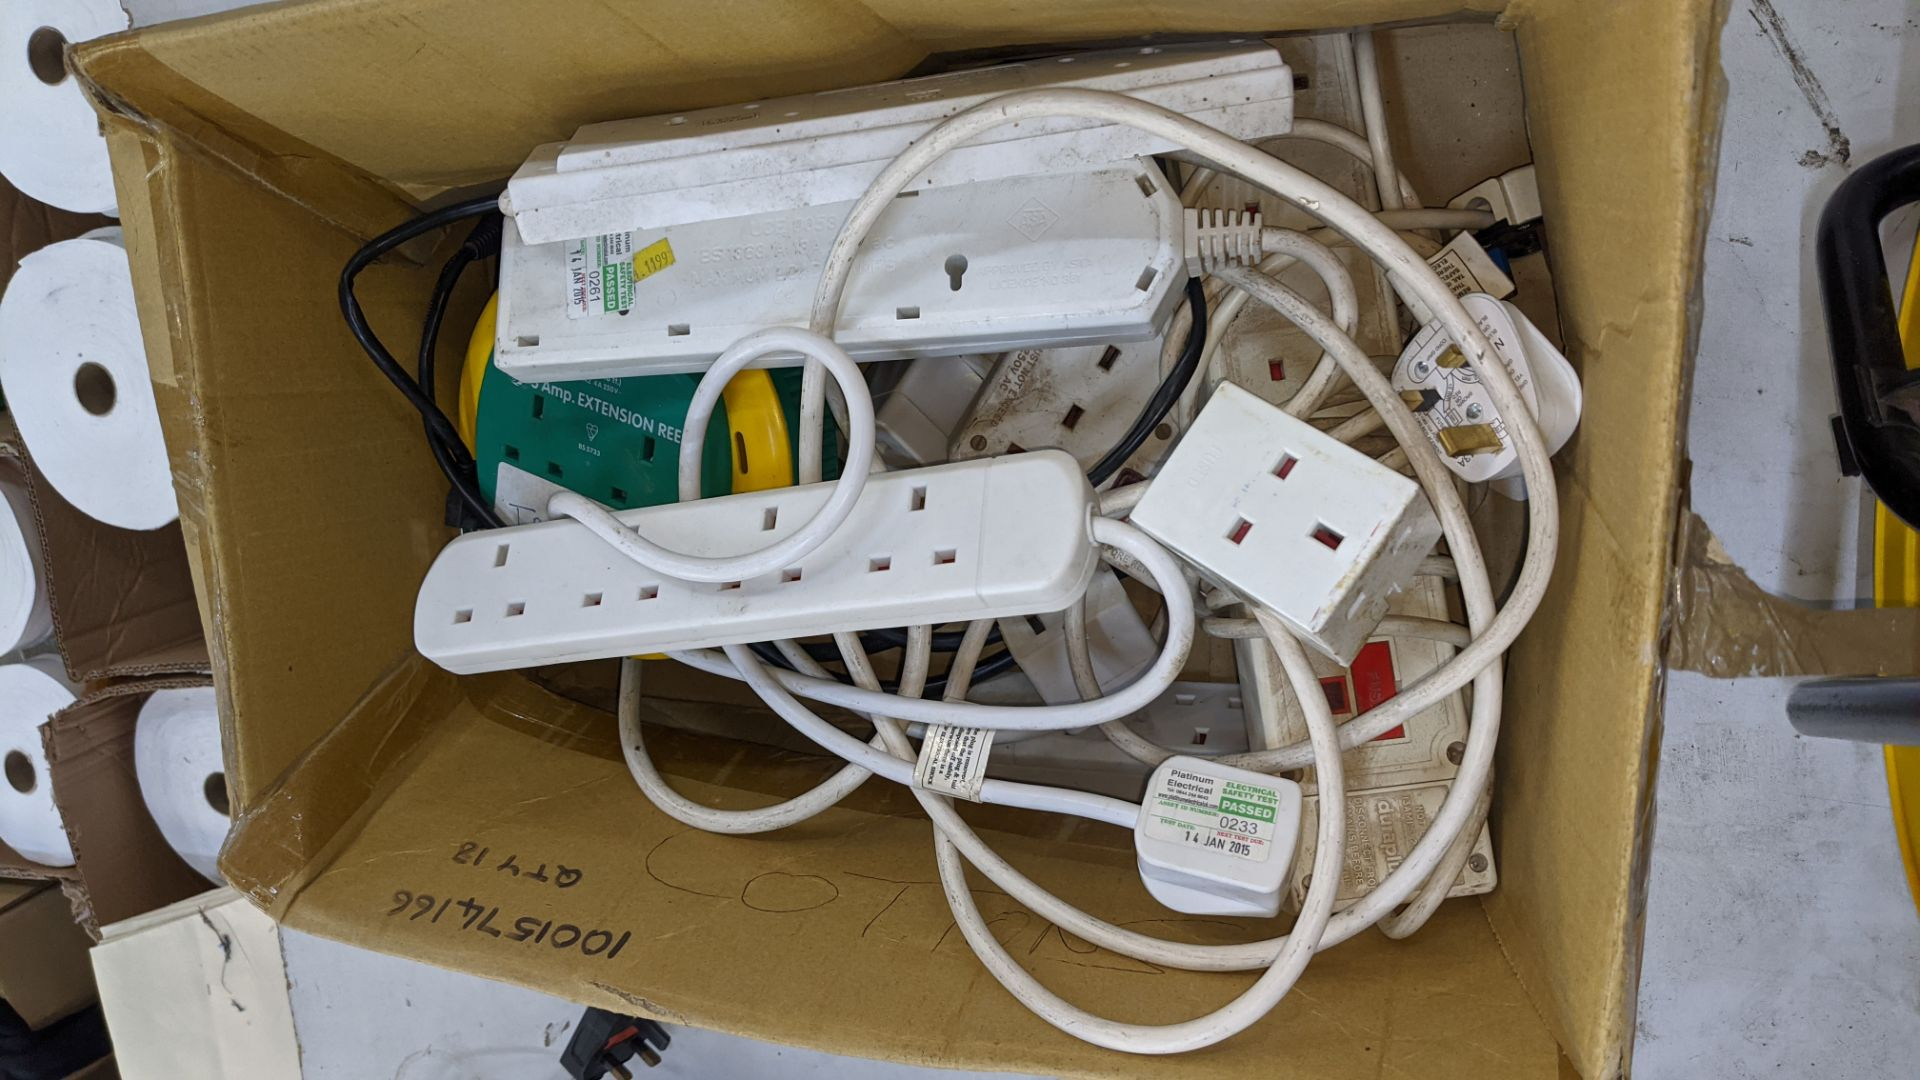 Box of electrical extension cables plus reel of extension cable as pictured in front of the box - Image 4 of 4